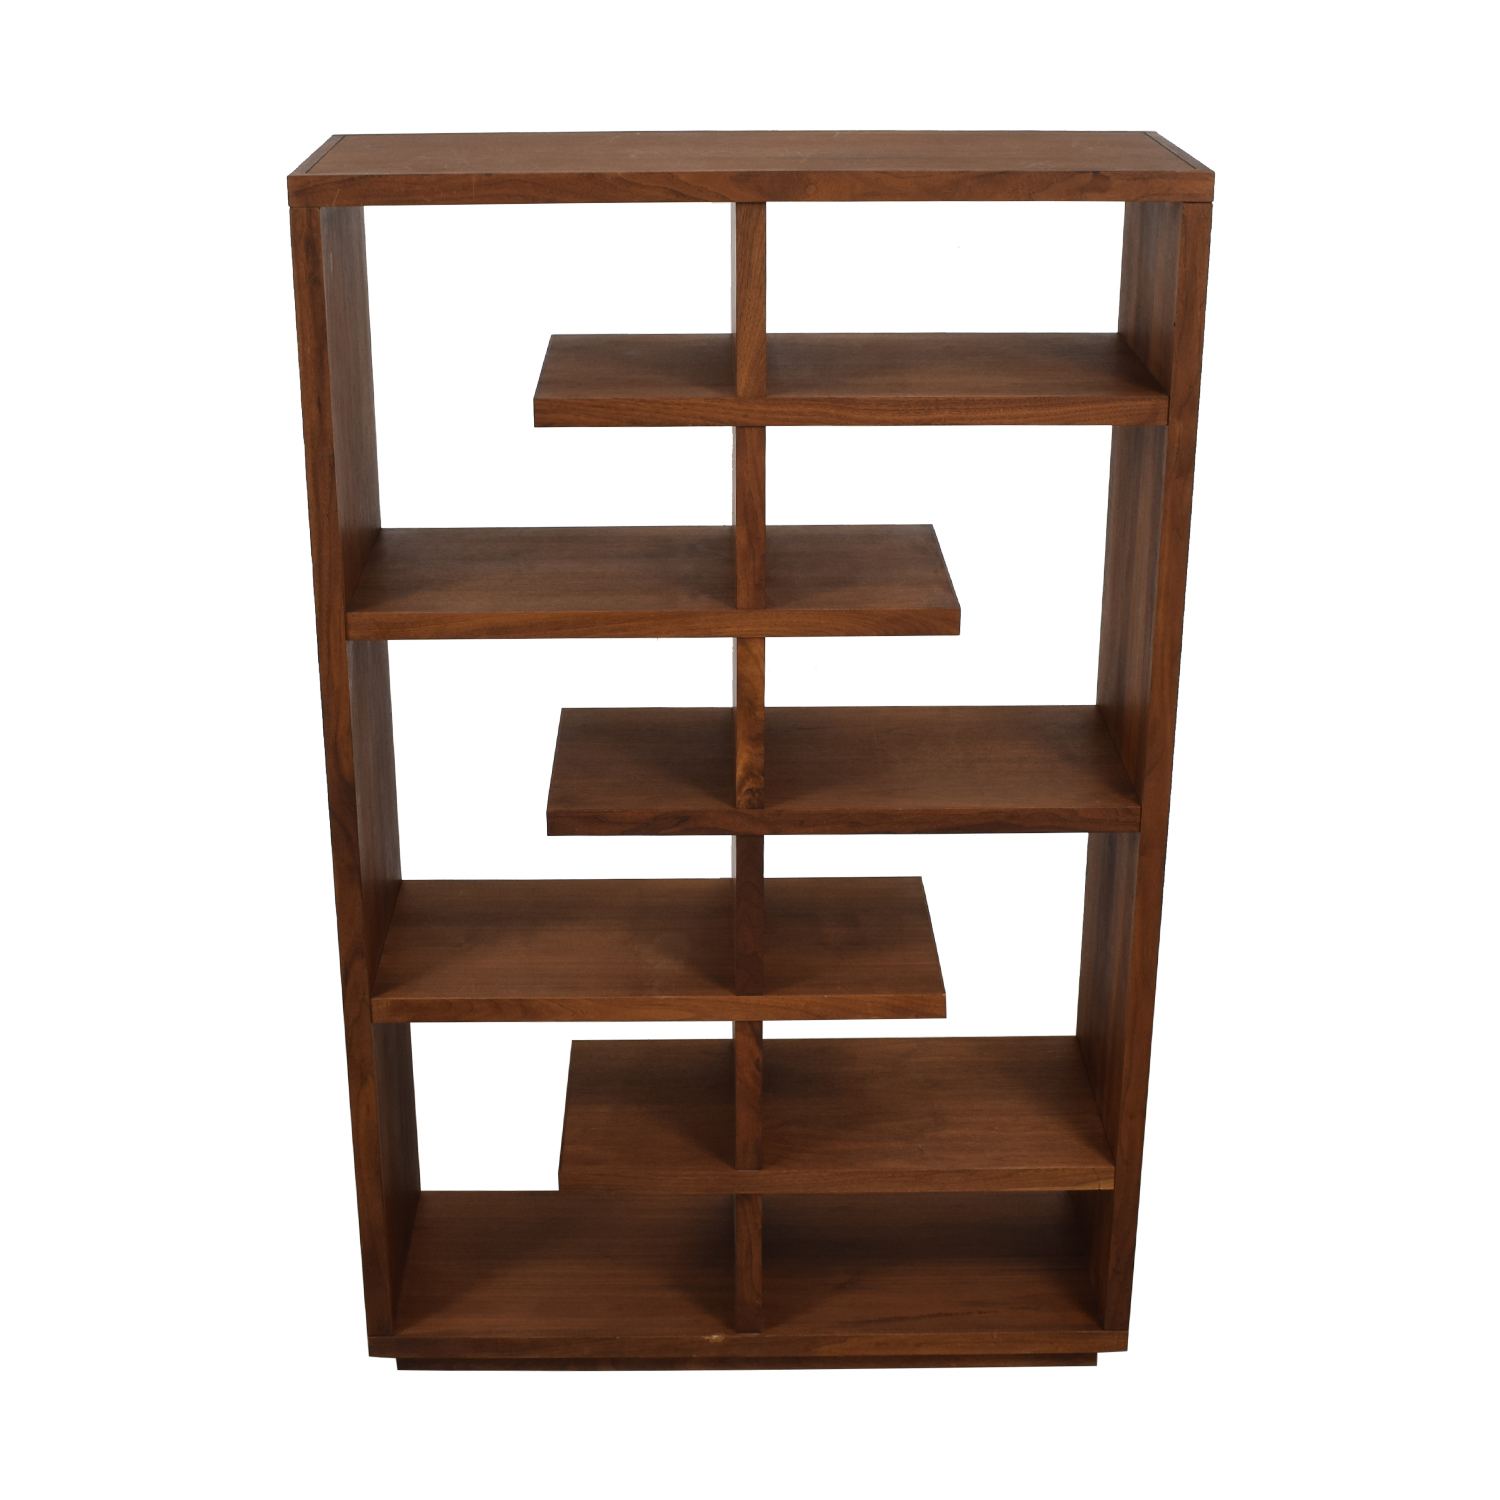 Crate & Barrel Elevate Walnut Bookcase Crate & Barrel